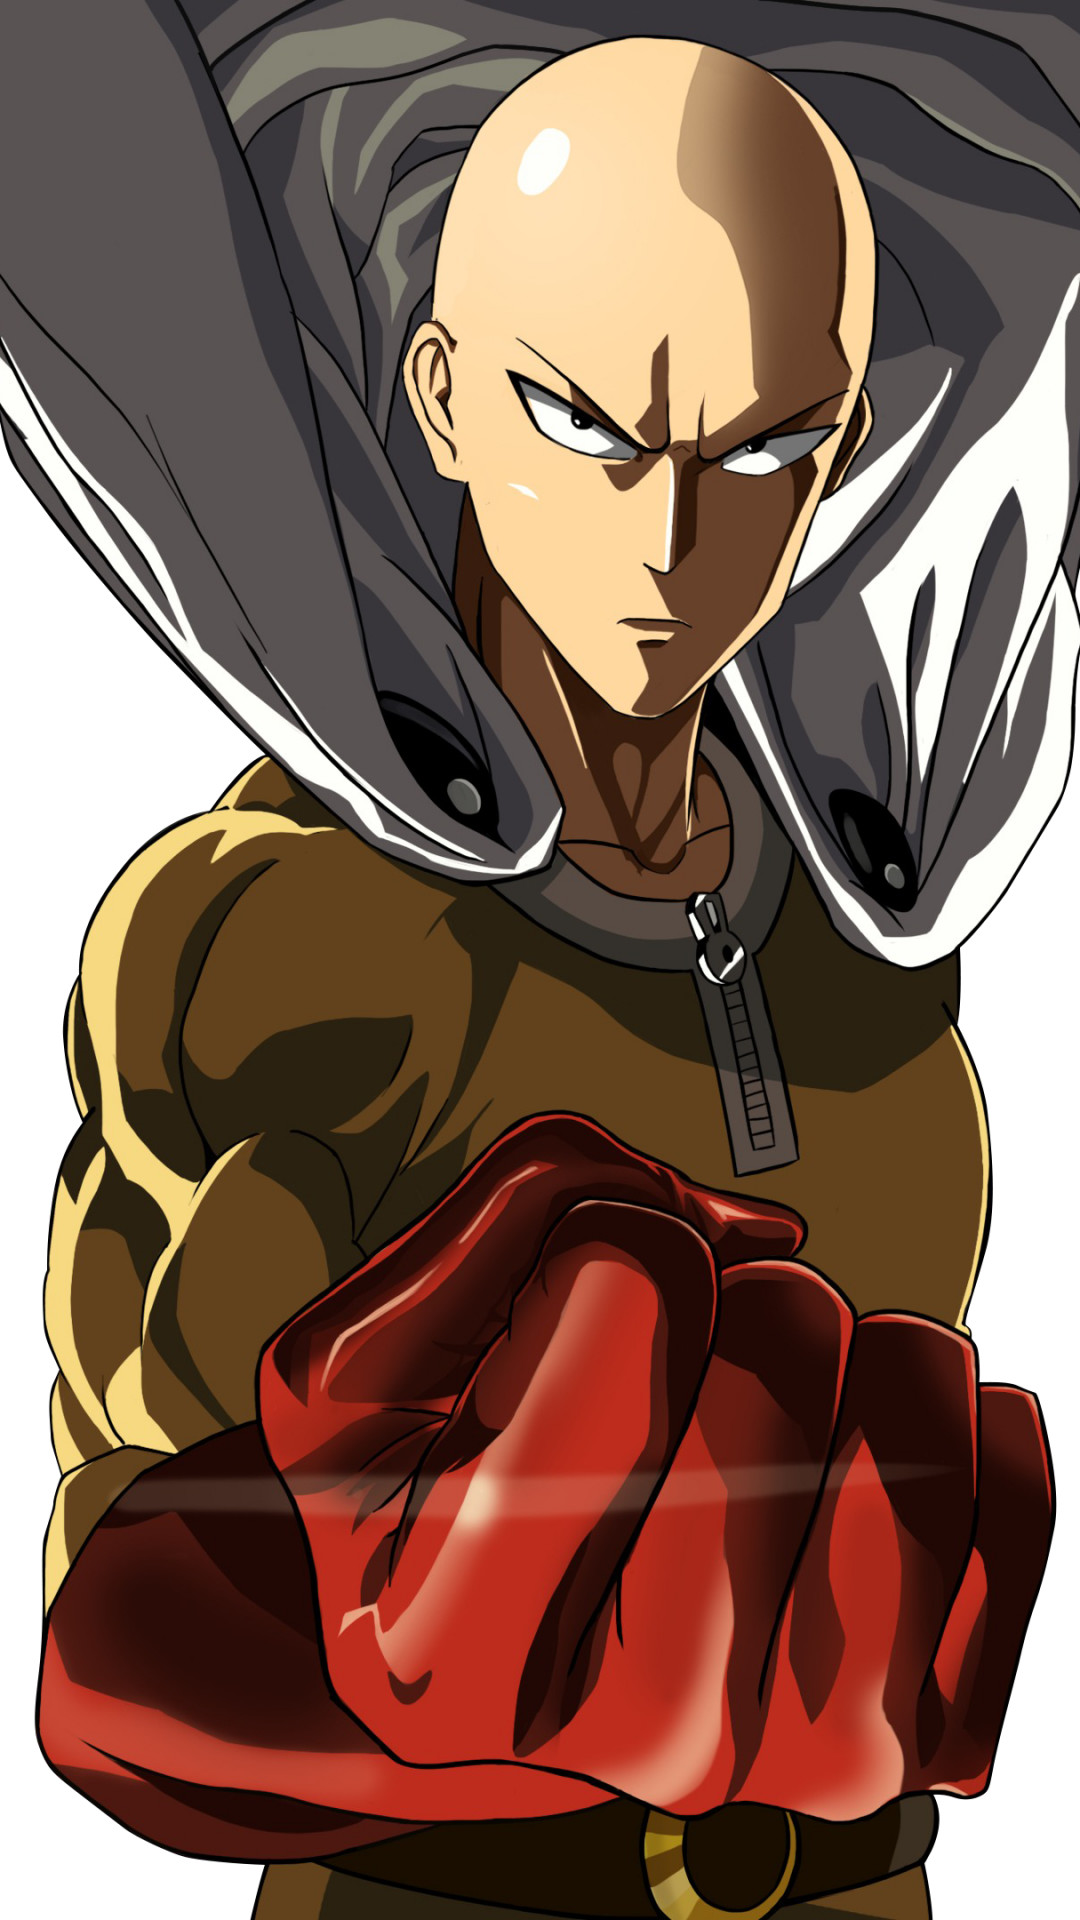 One Punch Man Season 2 Episode 11 Release Date, Spoilers and Online Streaming